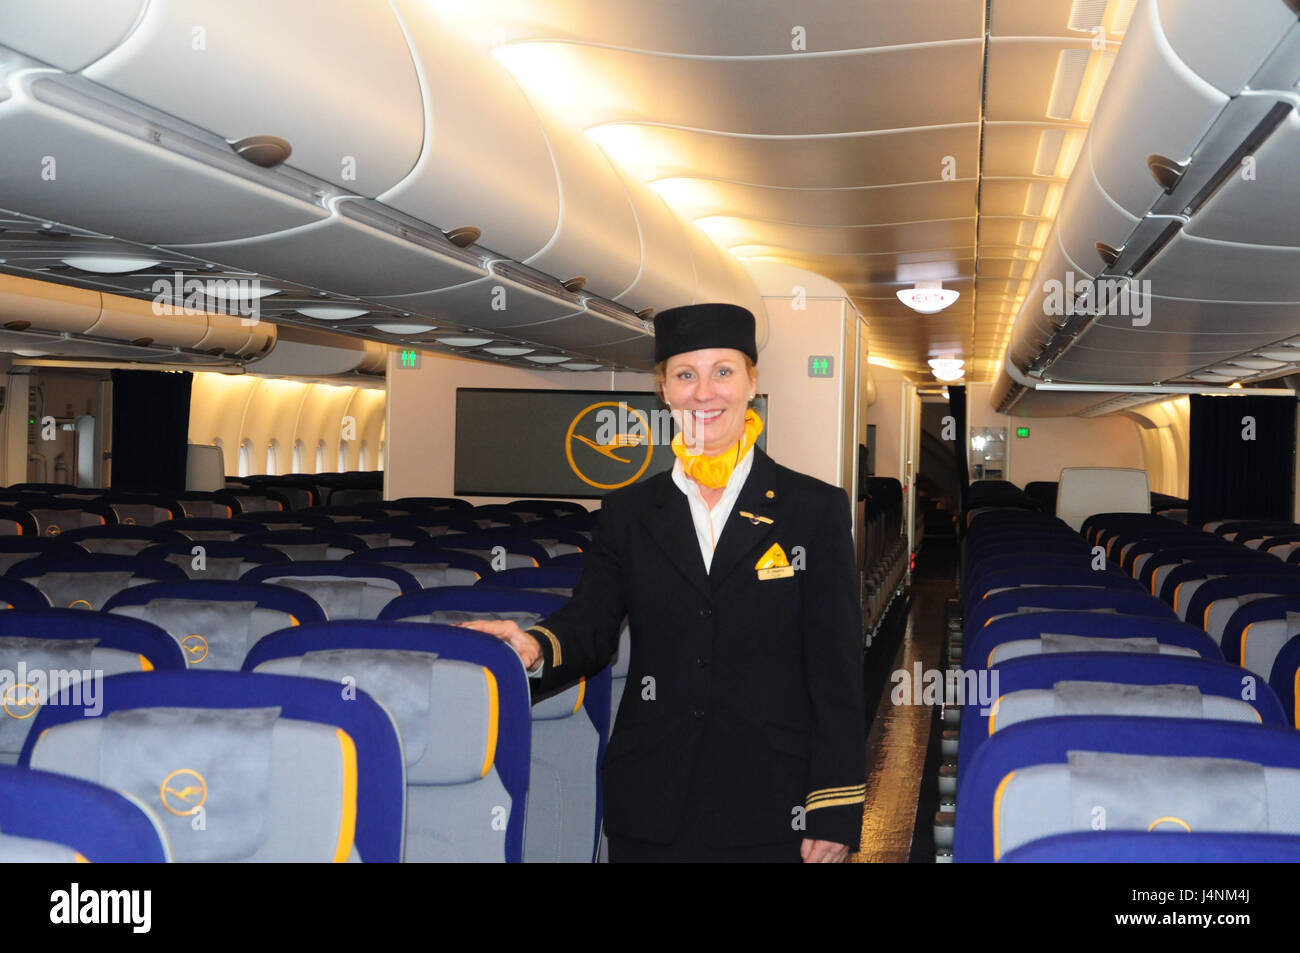 Airplane, inside, seats, flight attendant, air liner, seats, places, lighting, travel, vacation, people, stewardess, - Stock Image